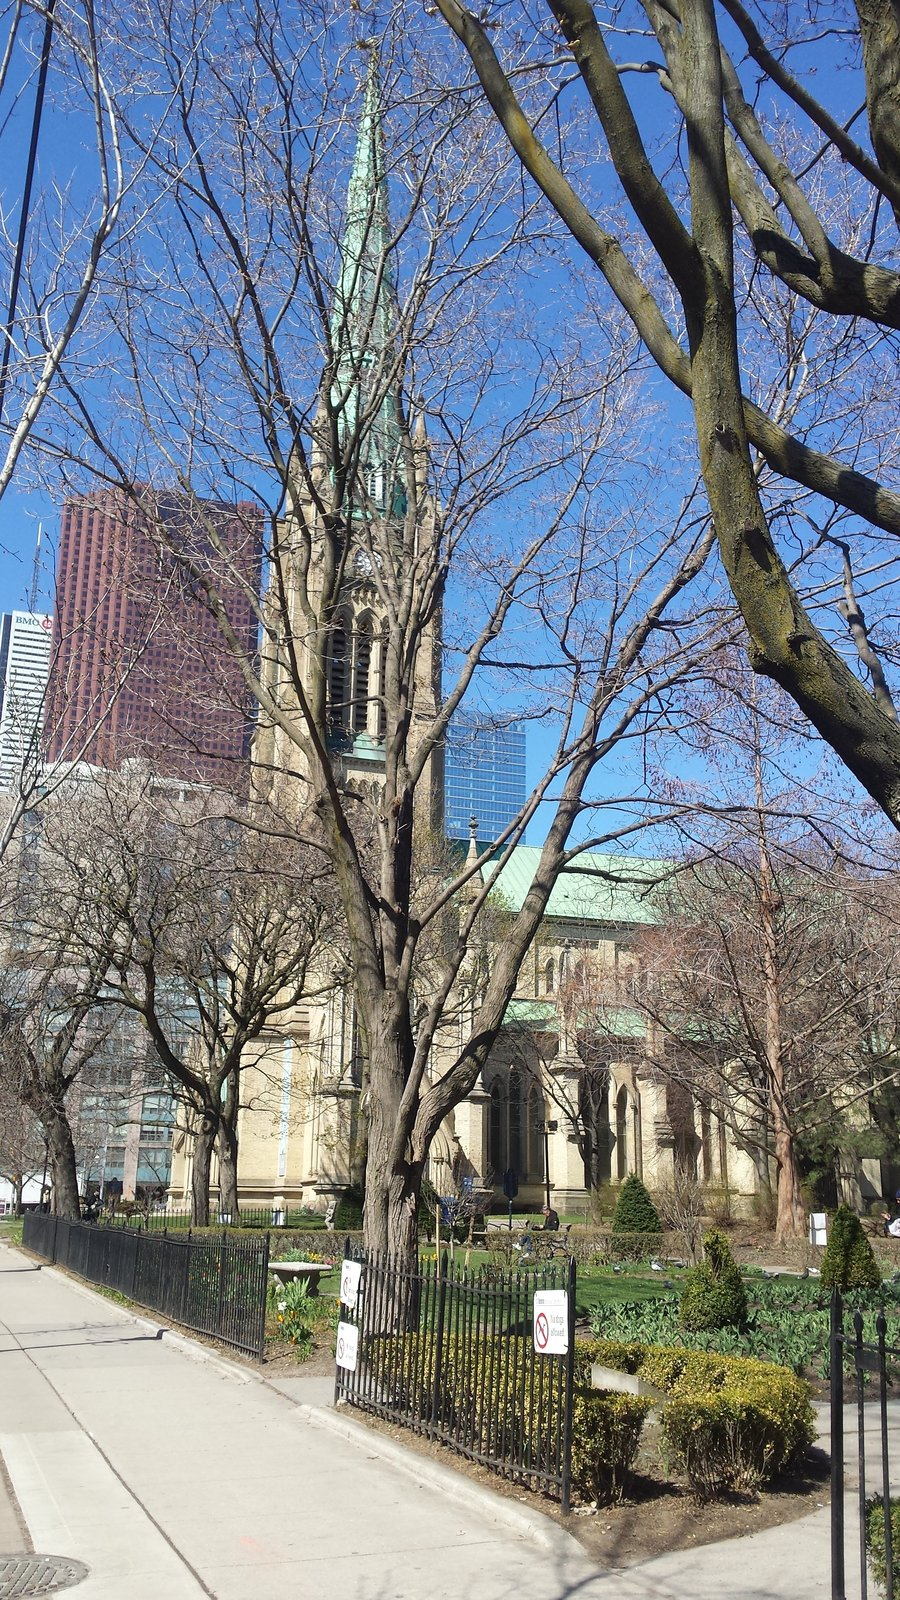 St. James Cathedral & Churchyard